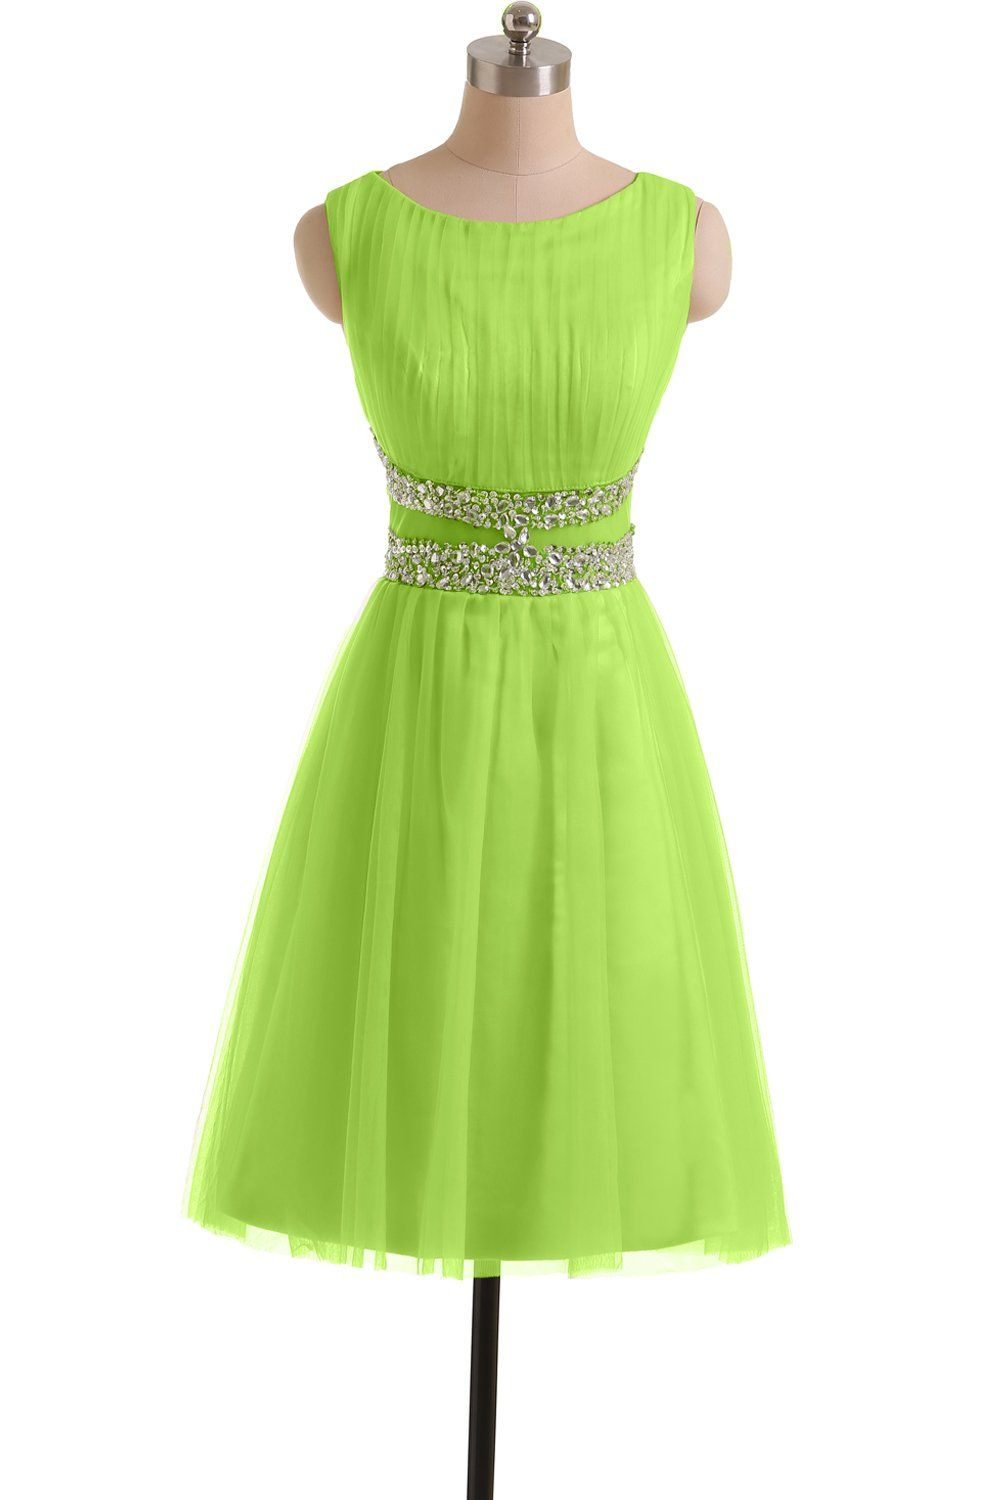 Lime green bridesmaid dress hot pink with bright orange sunvary cute tulle short cocktail homecoming dresses bridesmaid dresses for juniors sweety 16 short prom gowns lime green ombrellifo Images